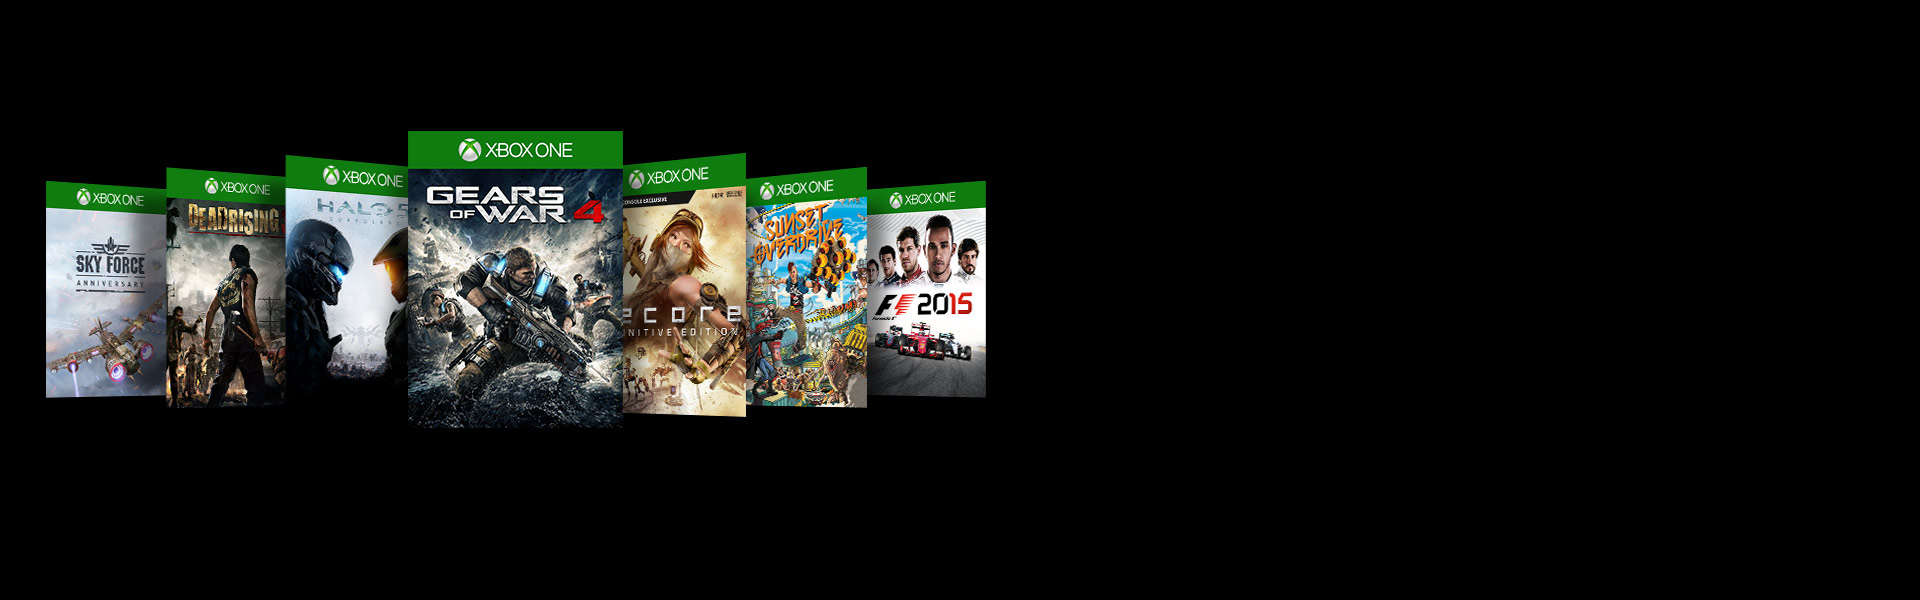 Collage of 7 popular Xbox games